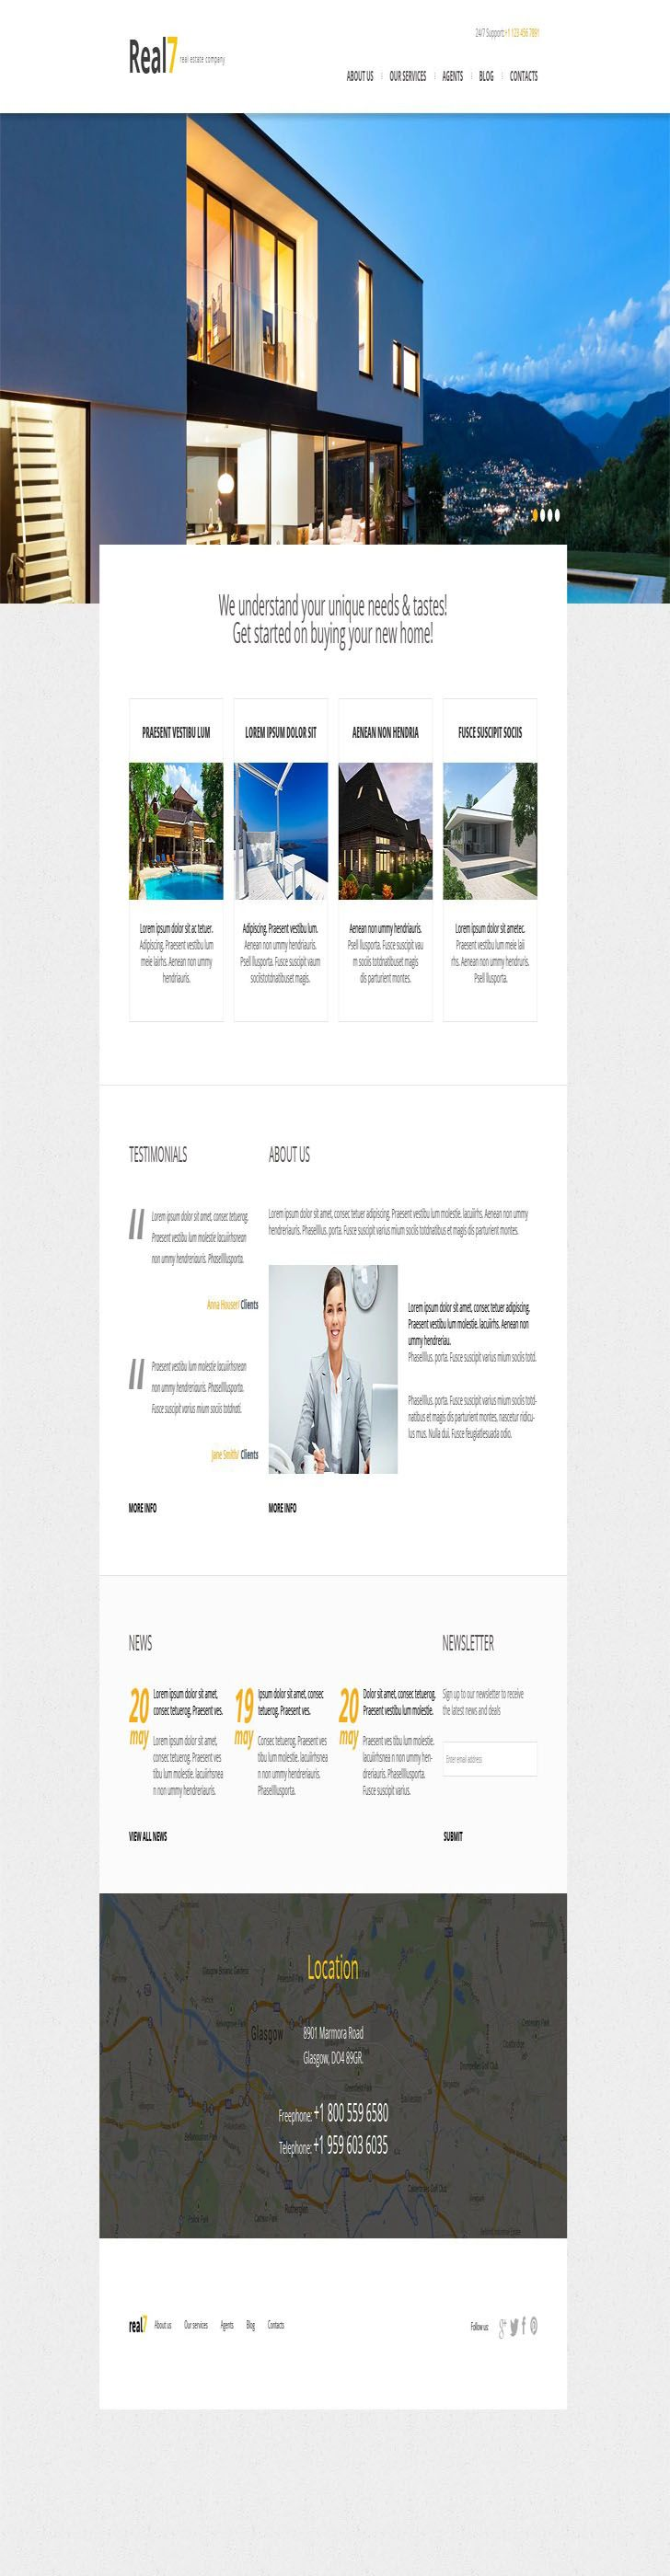 #Responsive #Real #Estate #WordPress #Theme.Cherry Framework Version:3.1.5 WordPress Compatibility:4.2.x-4.9.x WordPress Engine:4.4.x Additional Features:Advanced Theme Options, Sliced PSD, Back To Top Button, Calendar, Crossbrowser Compatibility, Custom Page Templates, Dropdown Menu, Favicon, Google map, Google Web Fonts, Social Options, Tabs, Tag Cloud, Tooltips Additional Info:Well Documented Animation:HTML plus JS, Parallax, Lazy Load effect Bootstrap Version:2.3.1 Coding:CSS 3…